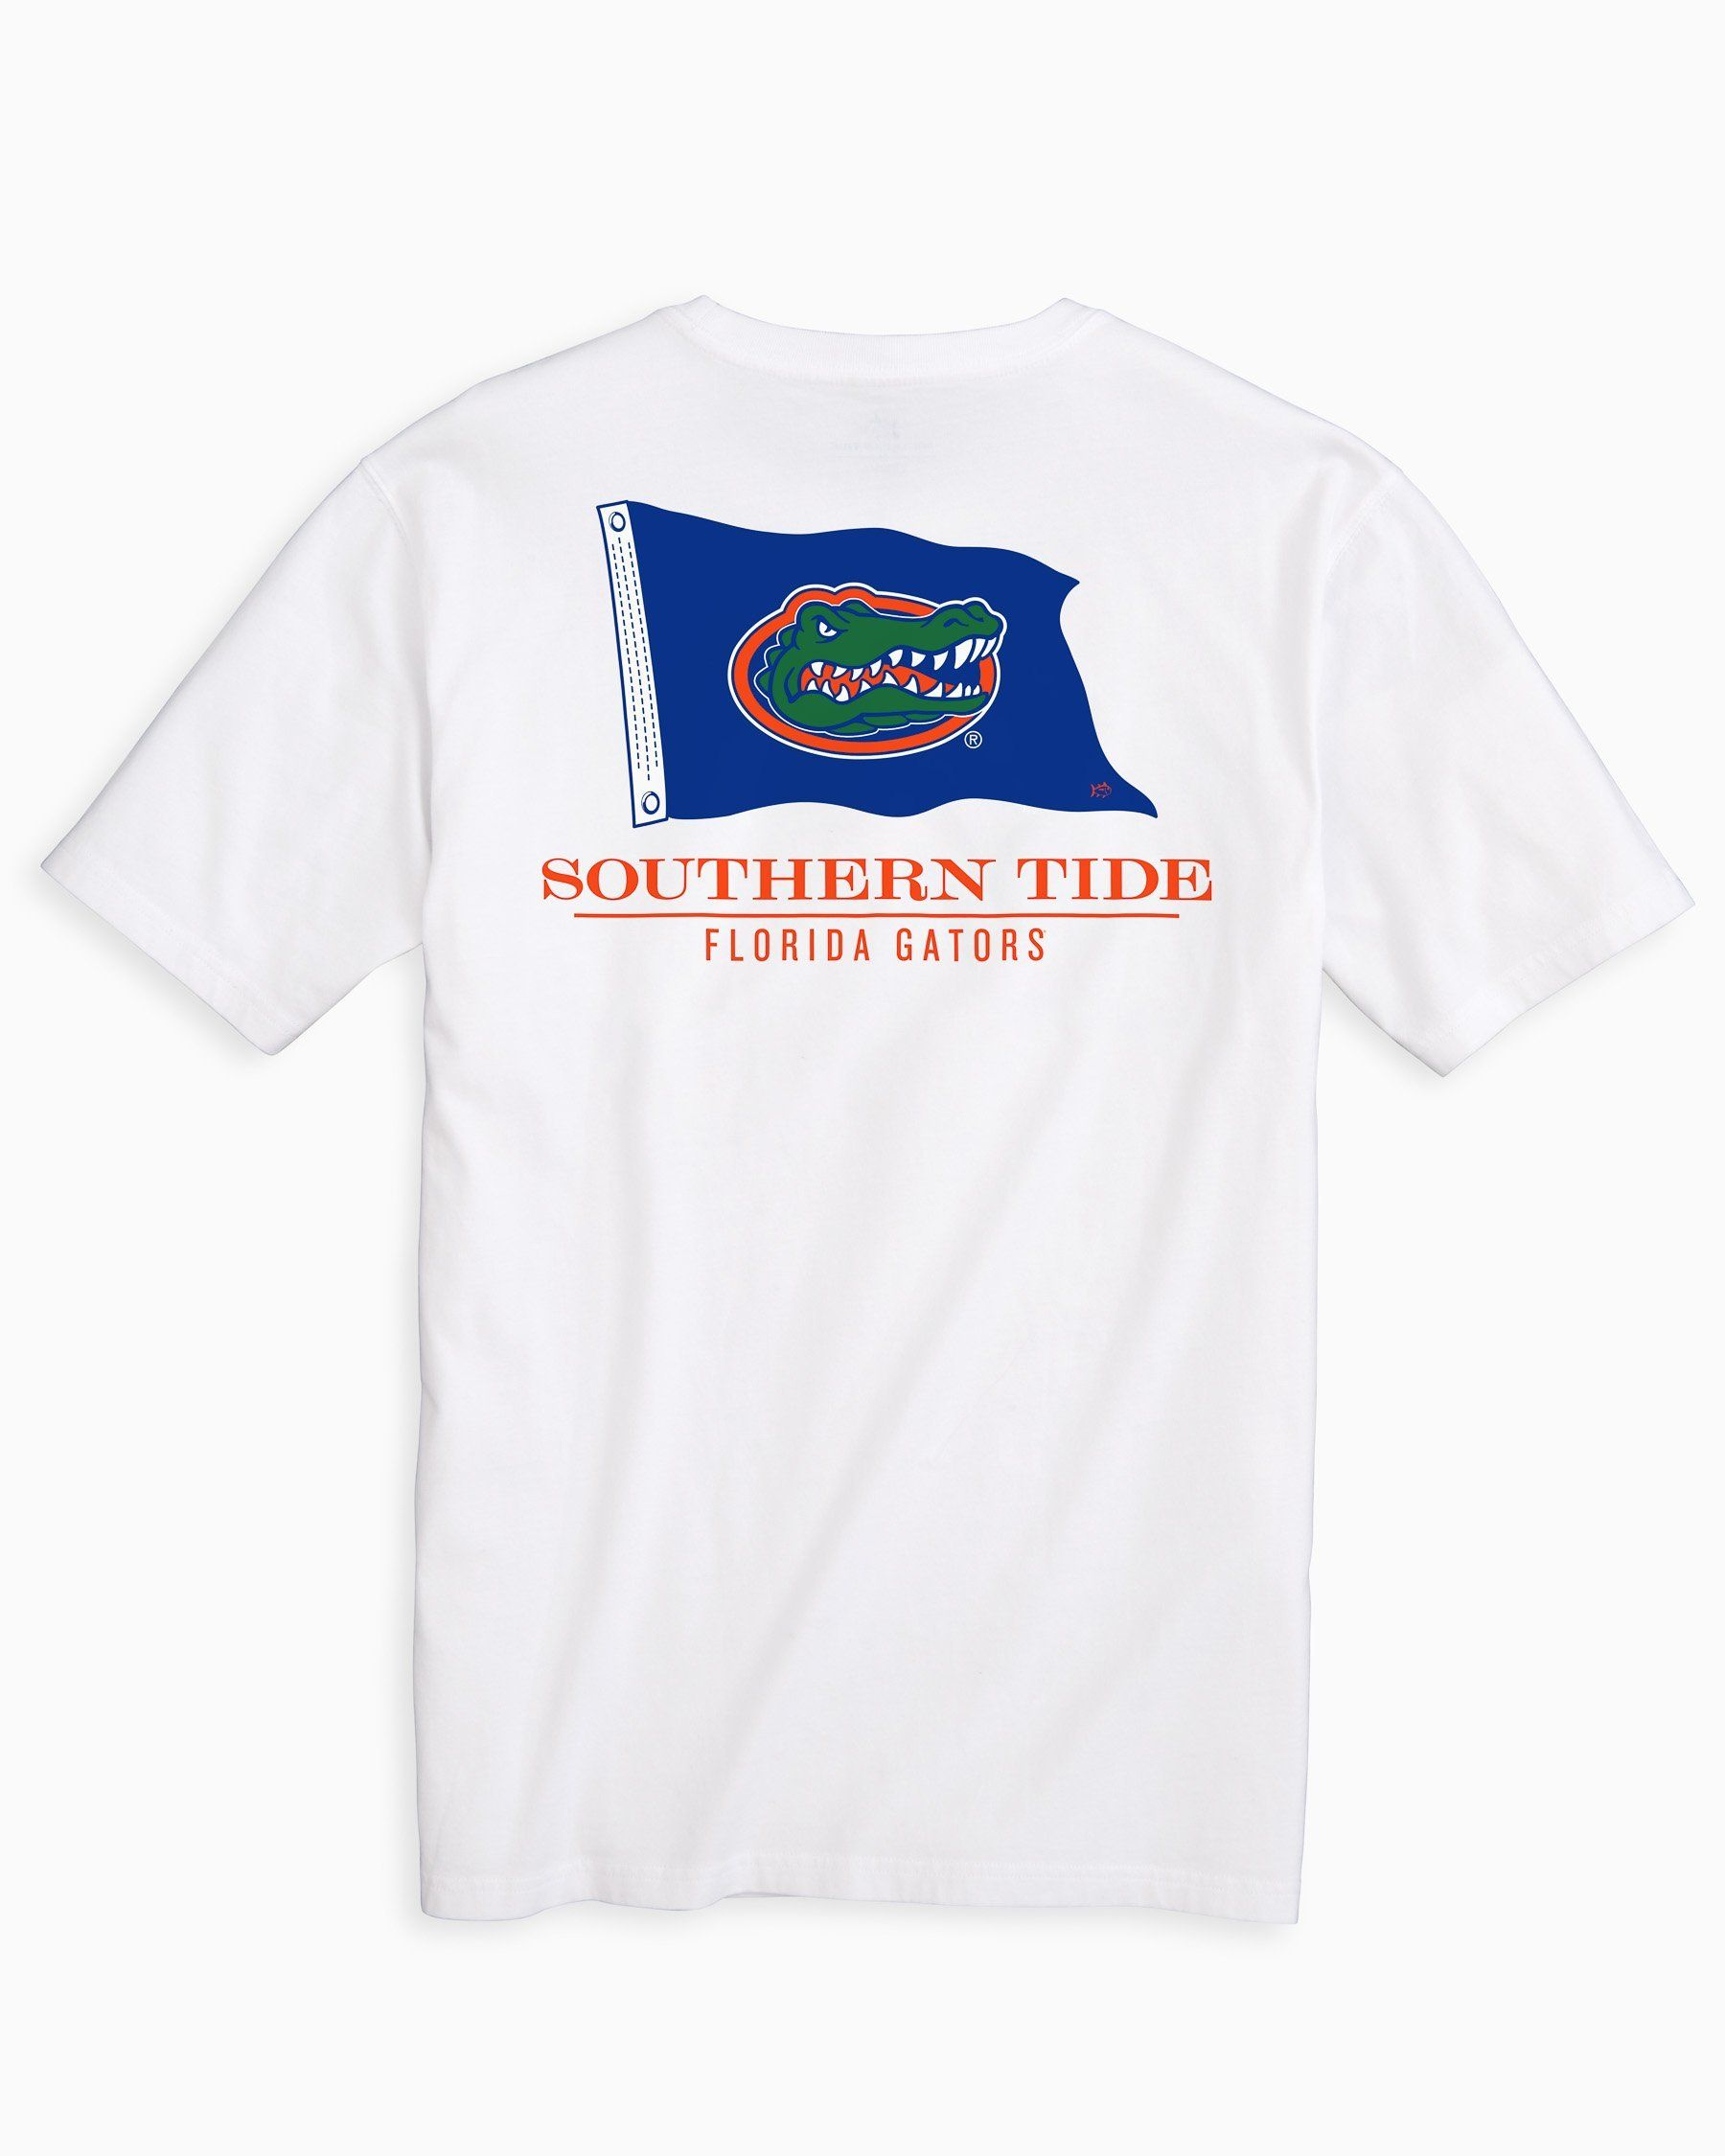 Men S Florida Gators Flag Short Sleeve T Shirt Classic White M By Southern Tide Volleyball Shirts Southern Tide Gator